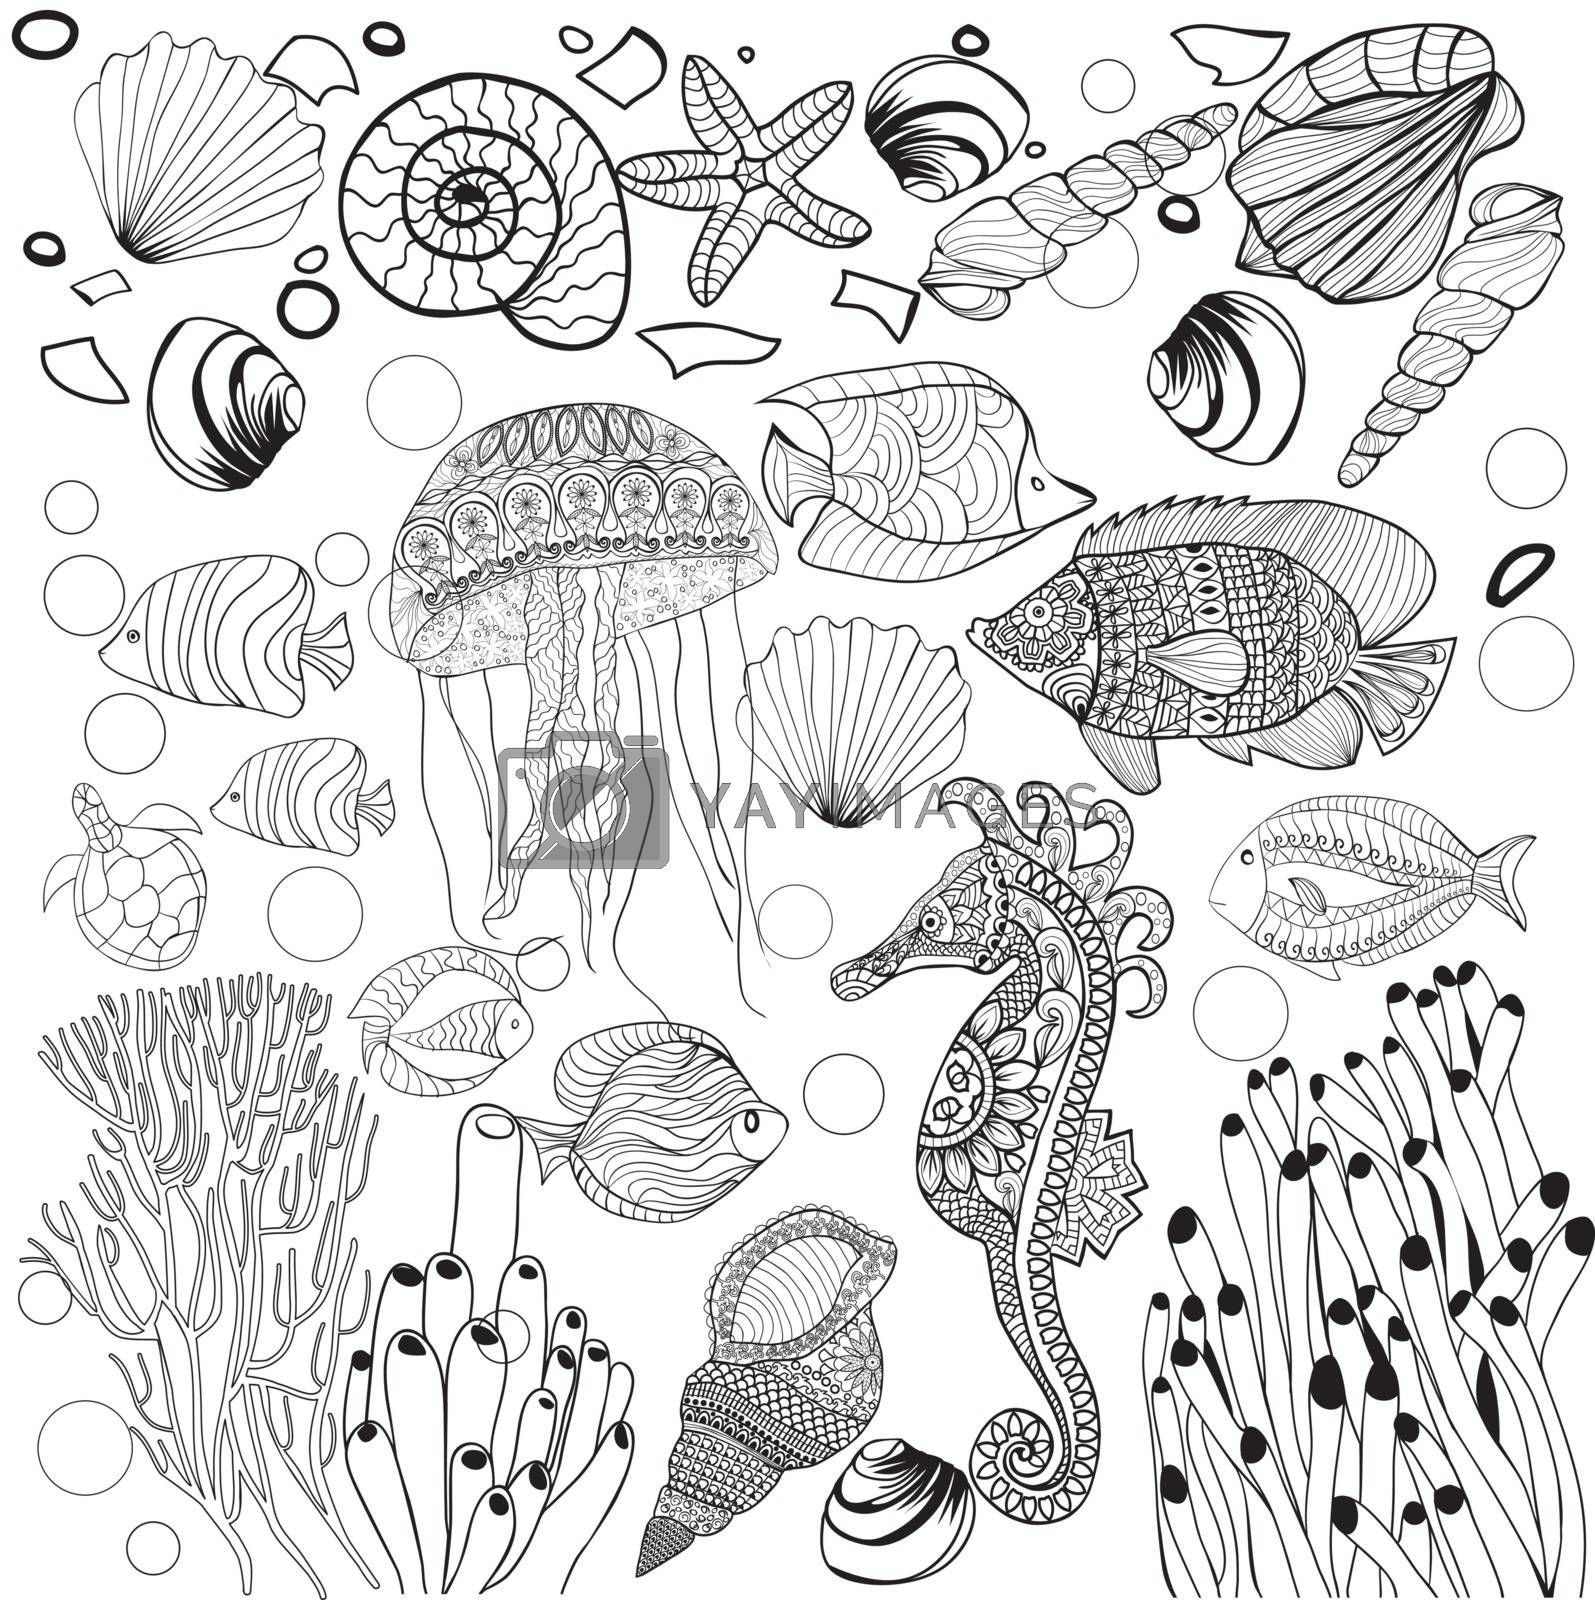 Decorative underwater world sea life, fishes, jelyfish, fishes, sea horse. Outline vector illustration black and white for Adult coloring book.